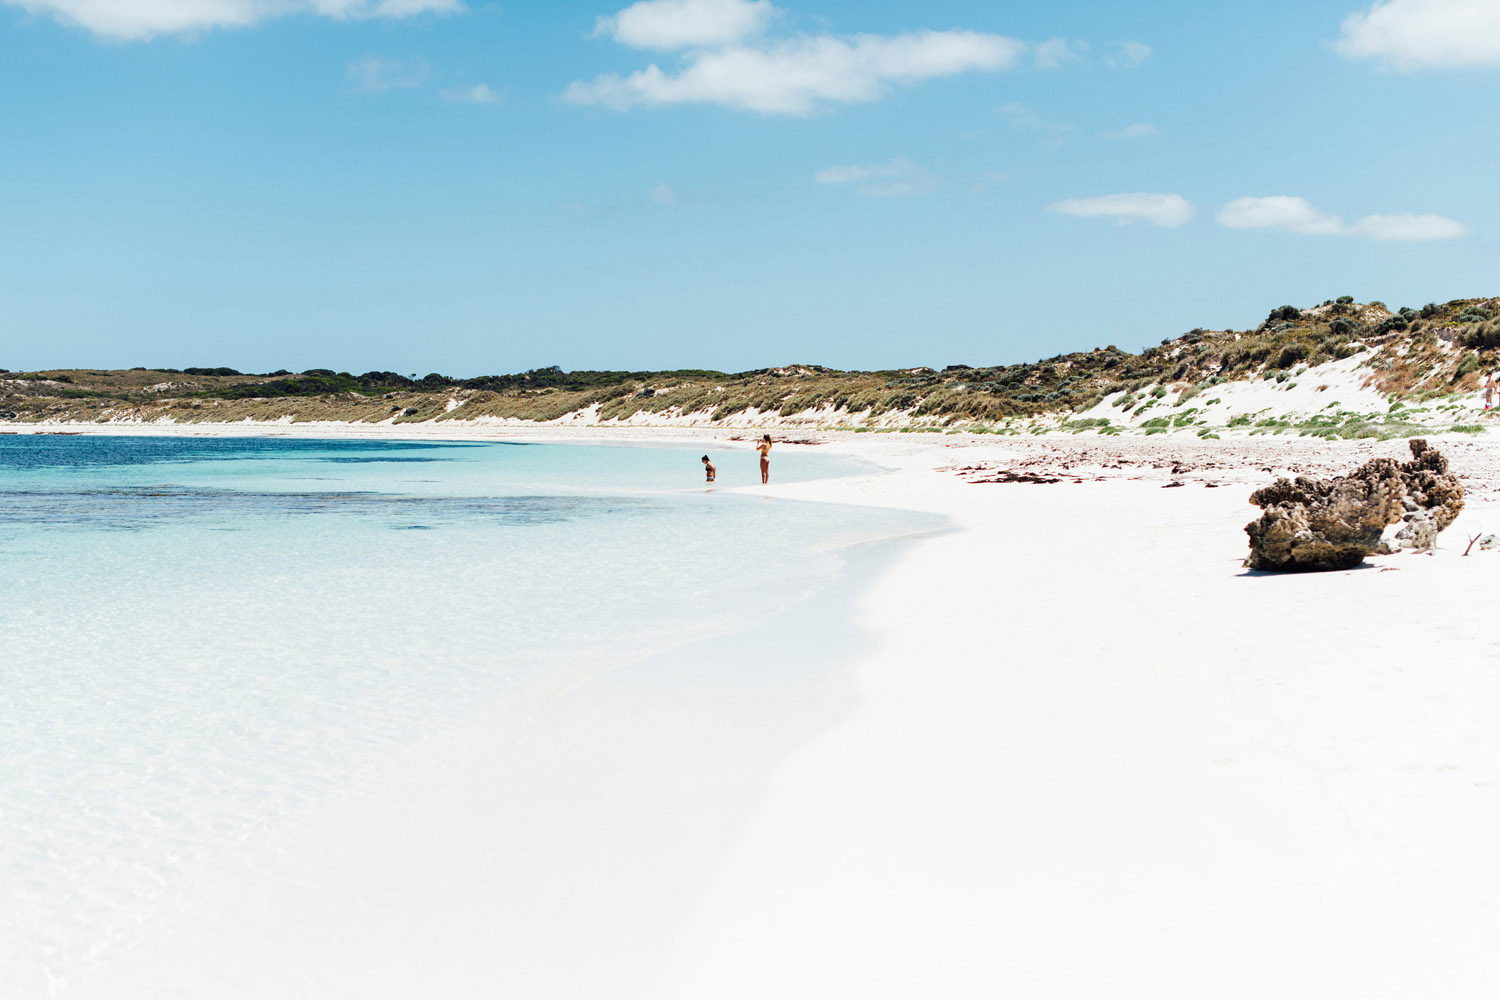 001-perth-photographer-rottnest-island.jpg